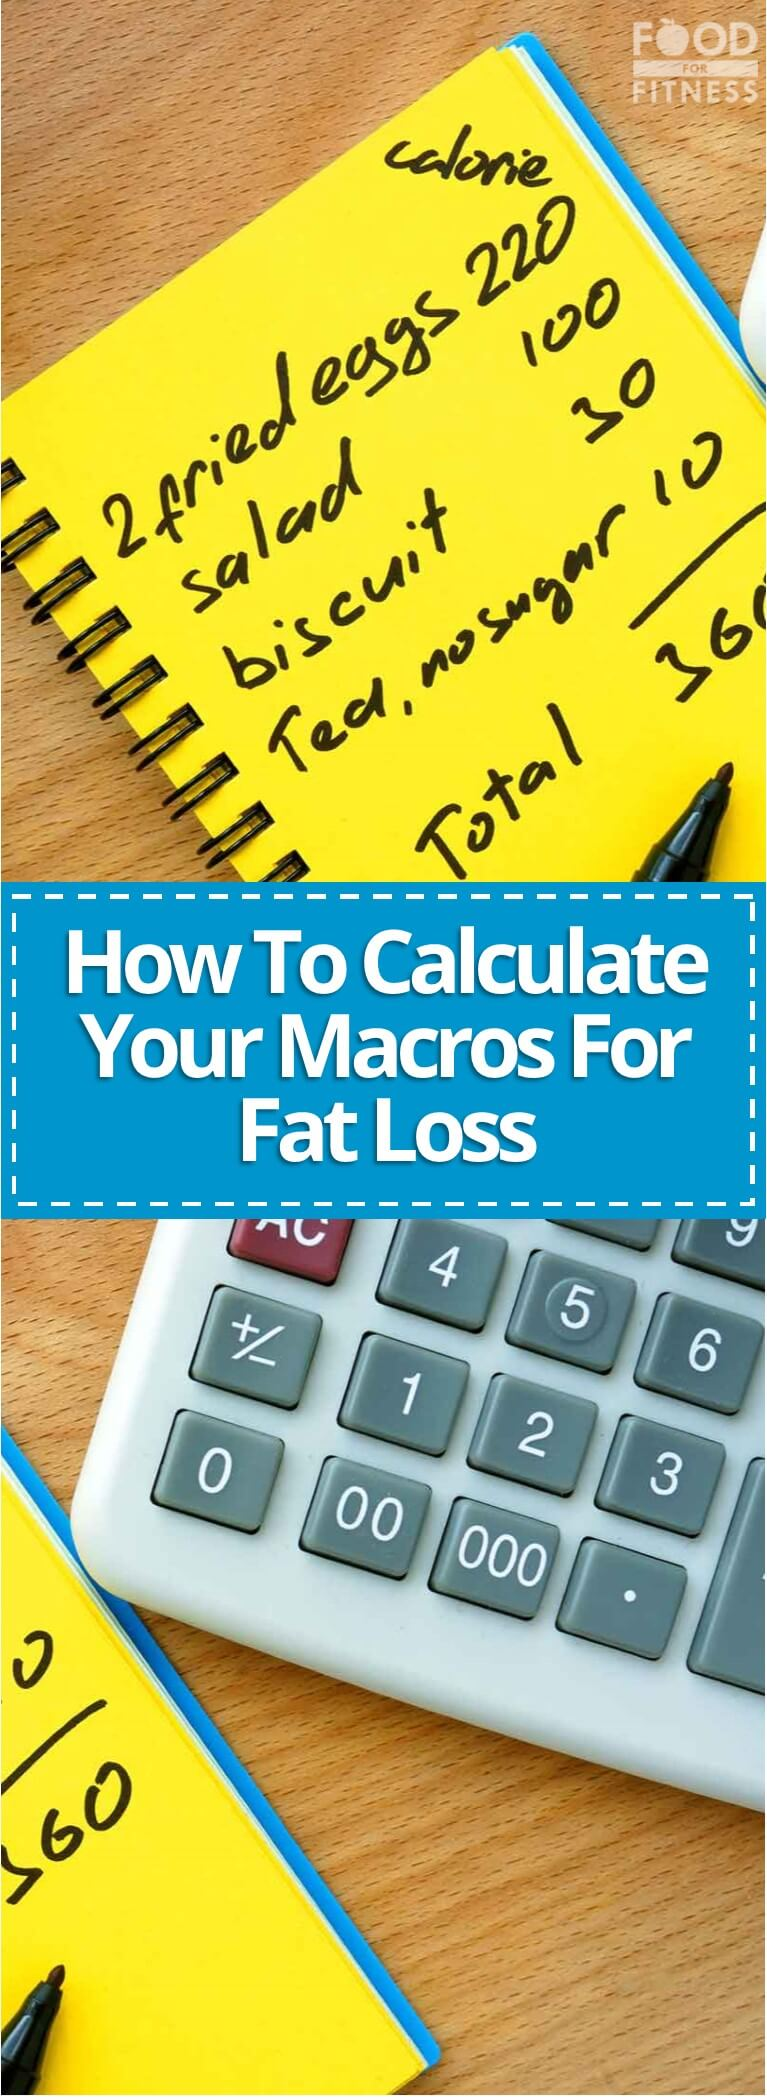 How To Calculate Macros For Fat Loss, Flexible Dieting & IIFYM